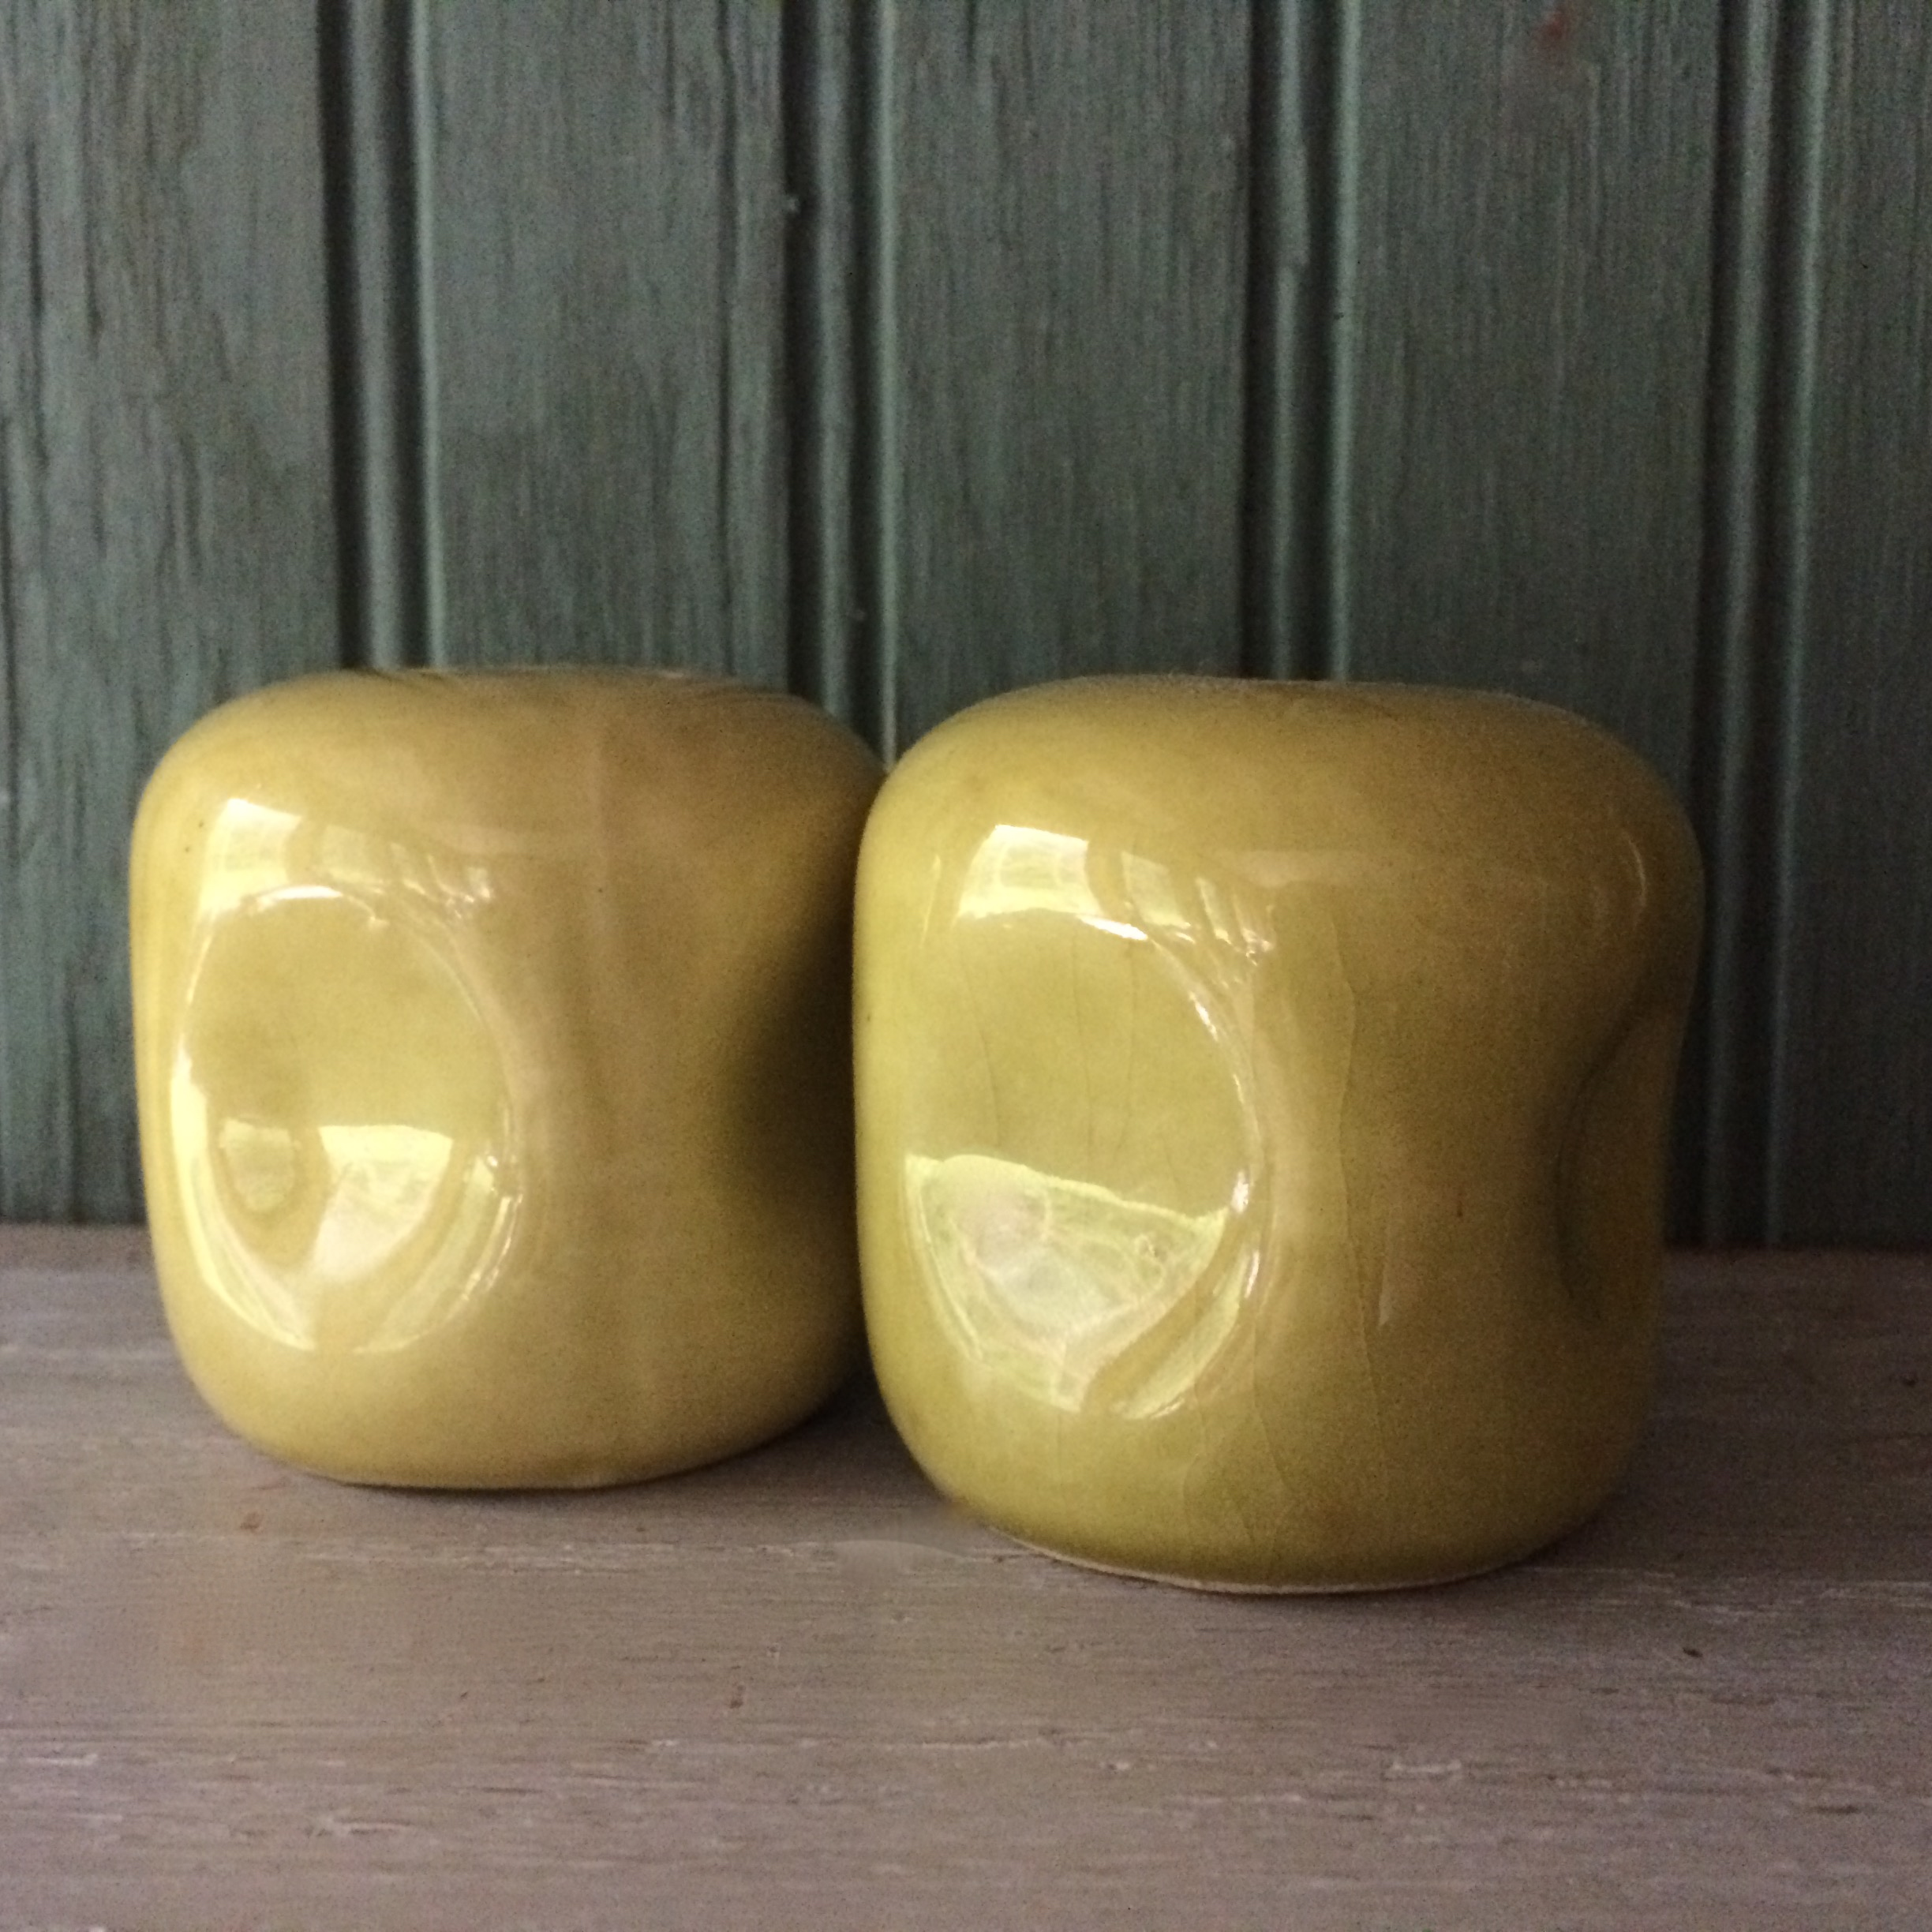 russell wright chartreuse salt and pepper shakers – for you  - russel wright american modern salt and pepper shakers